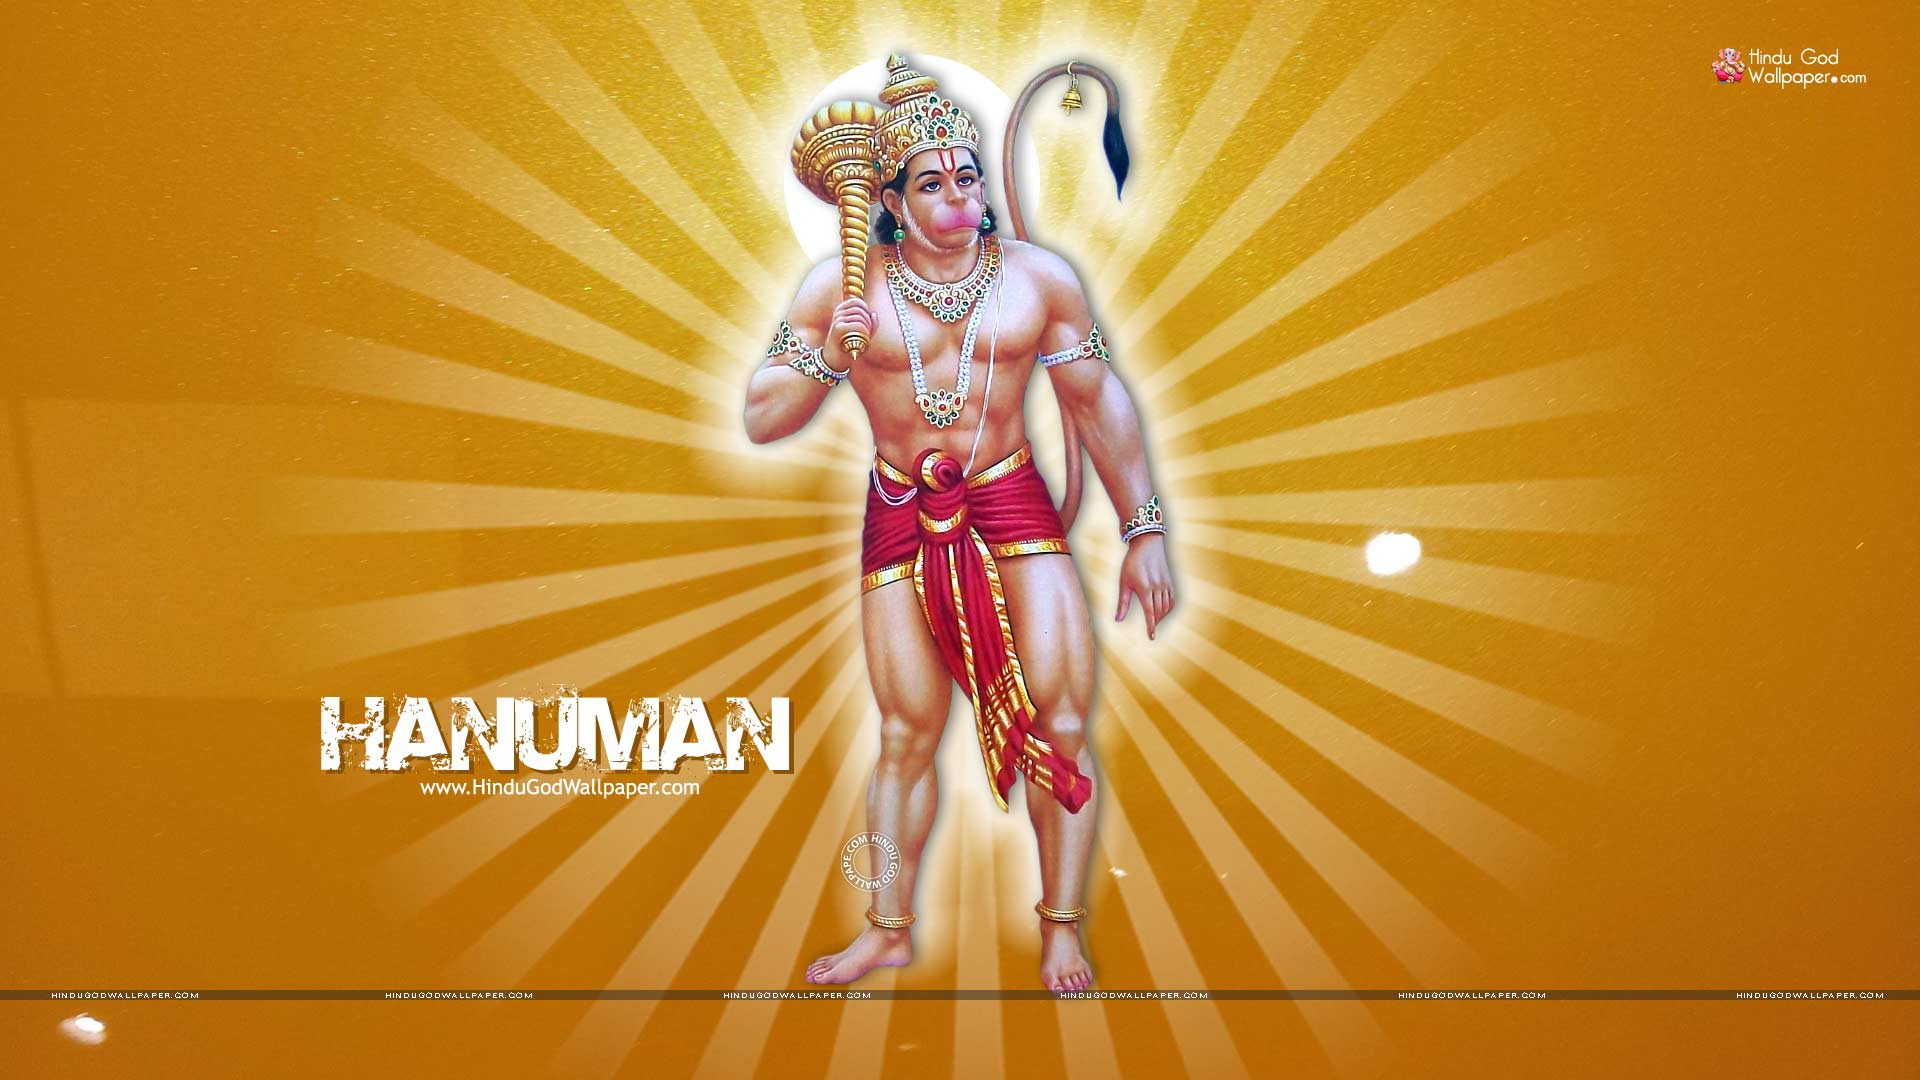 hanuman bodybuilding hd wallpaper